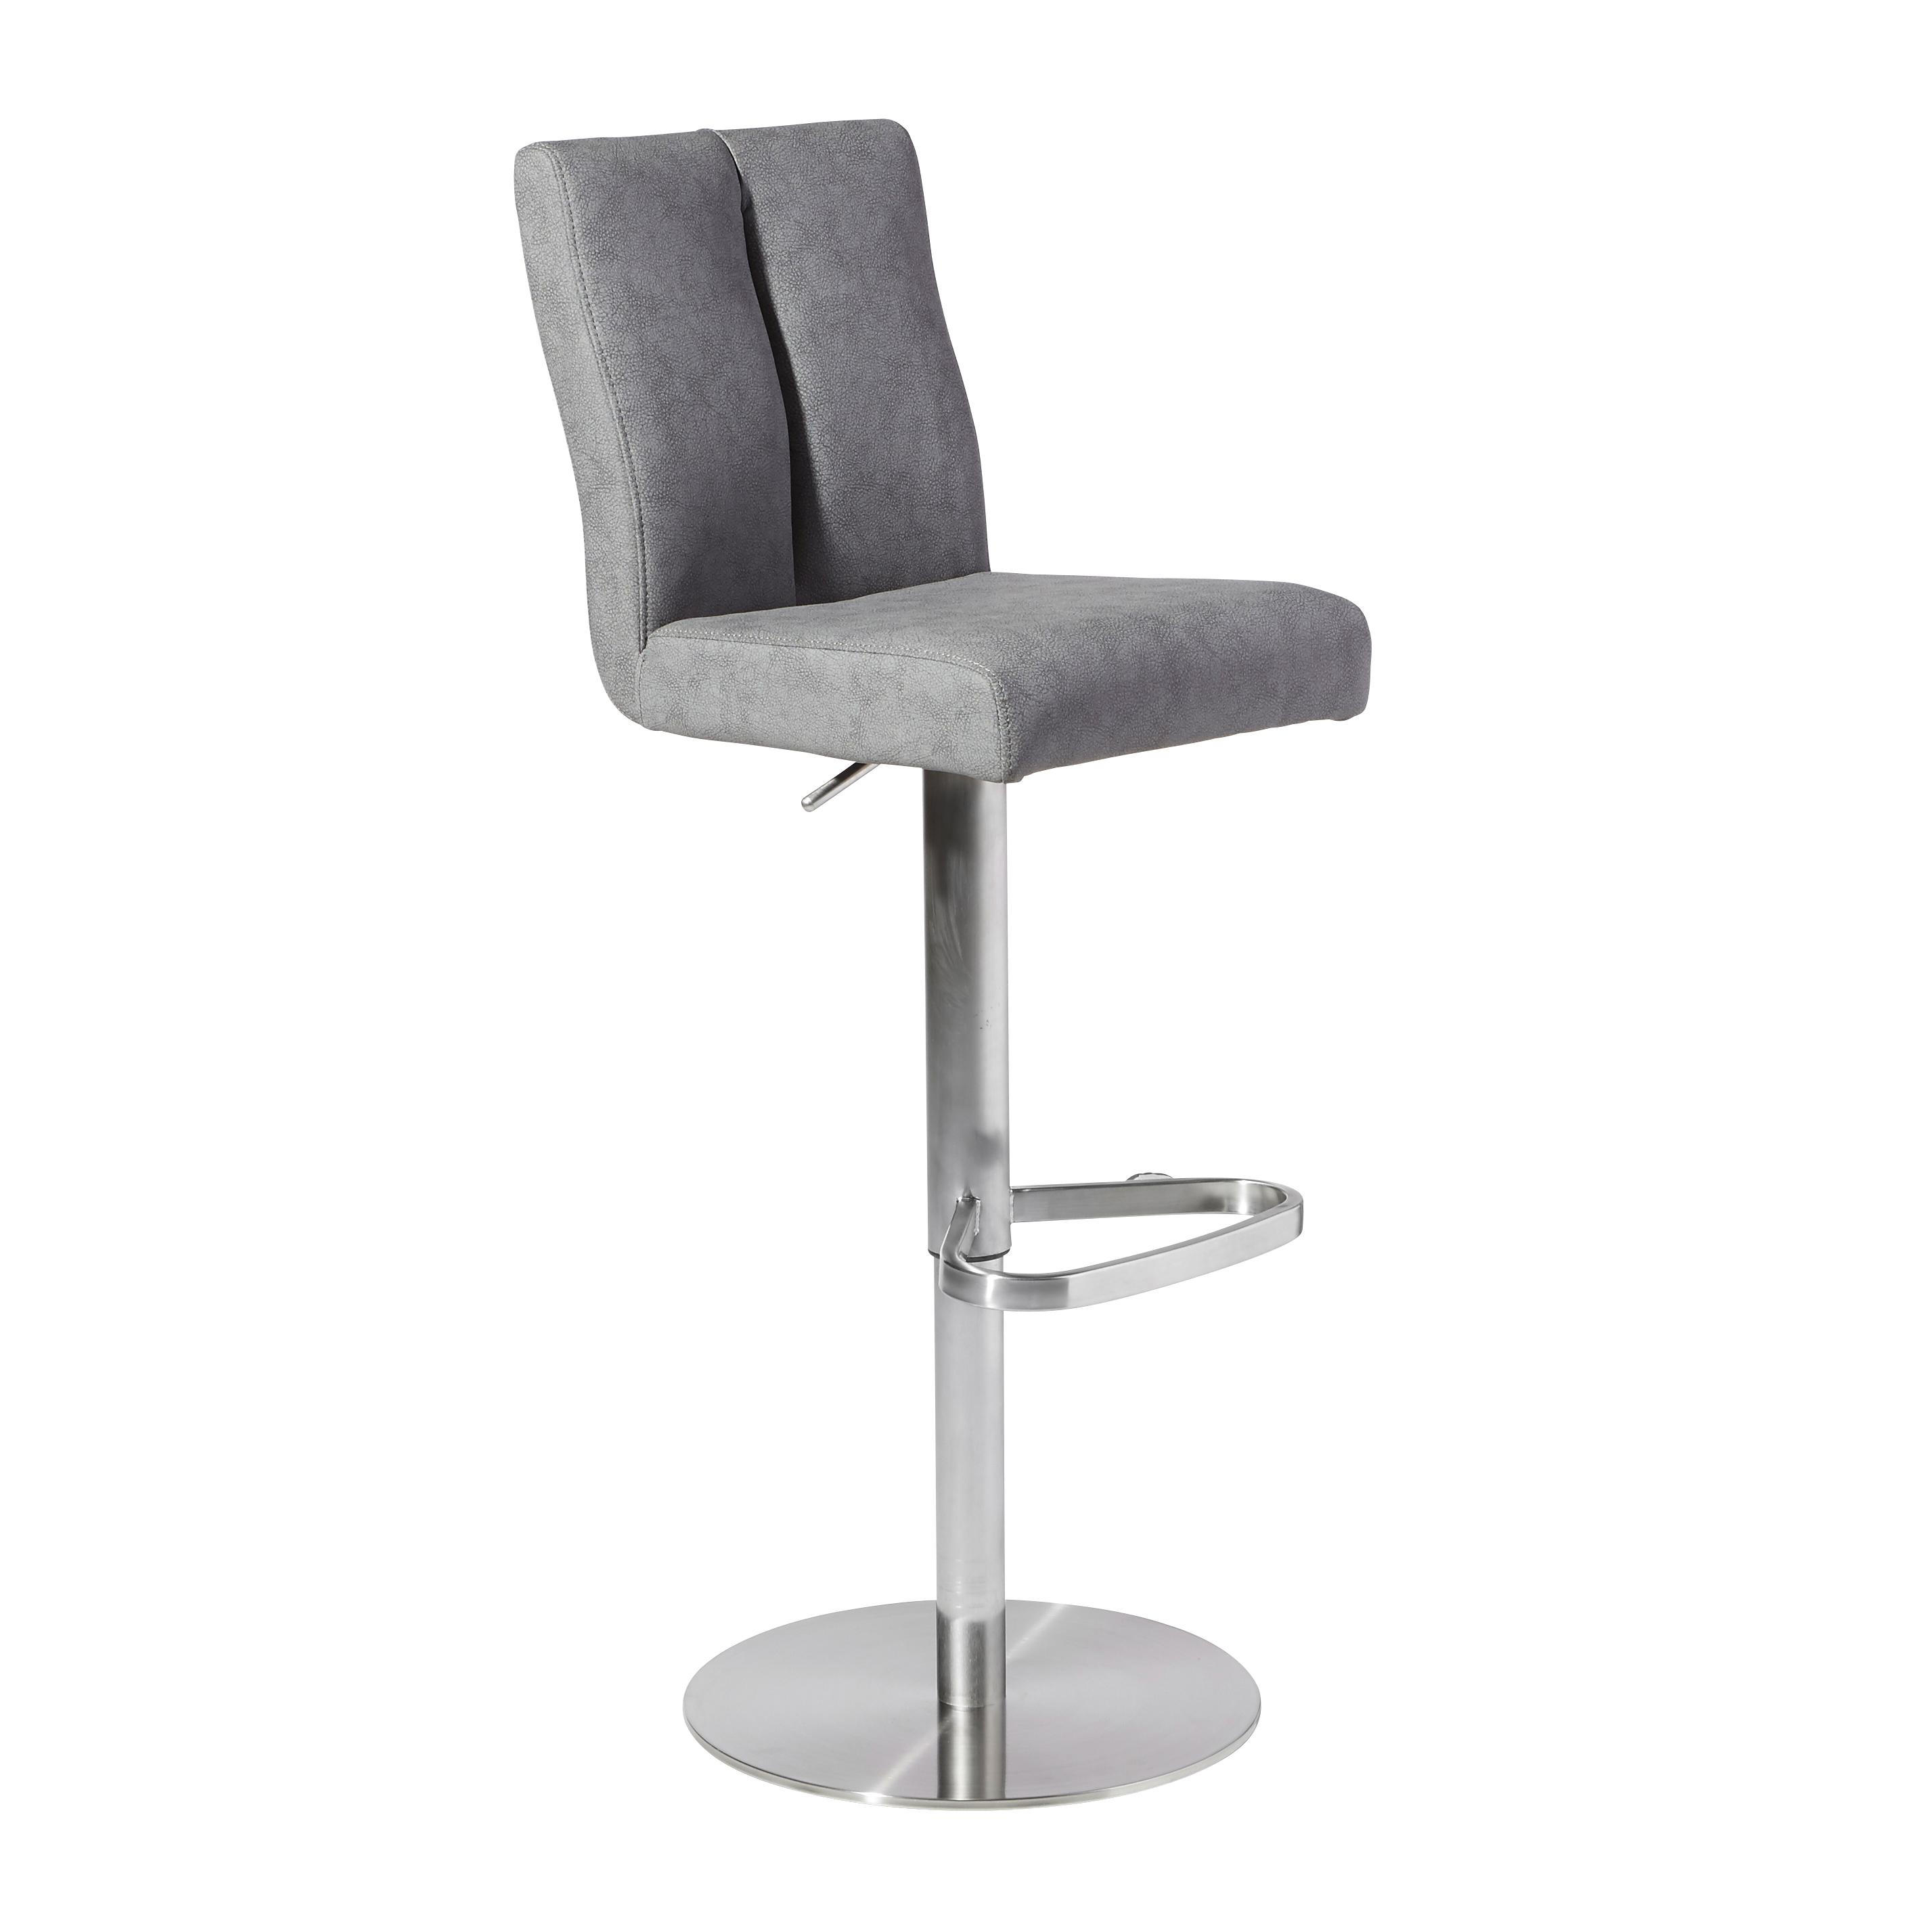 Barhocker Metall Novel Barhocker Lederlook Silber Grau